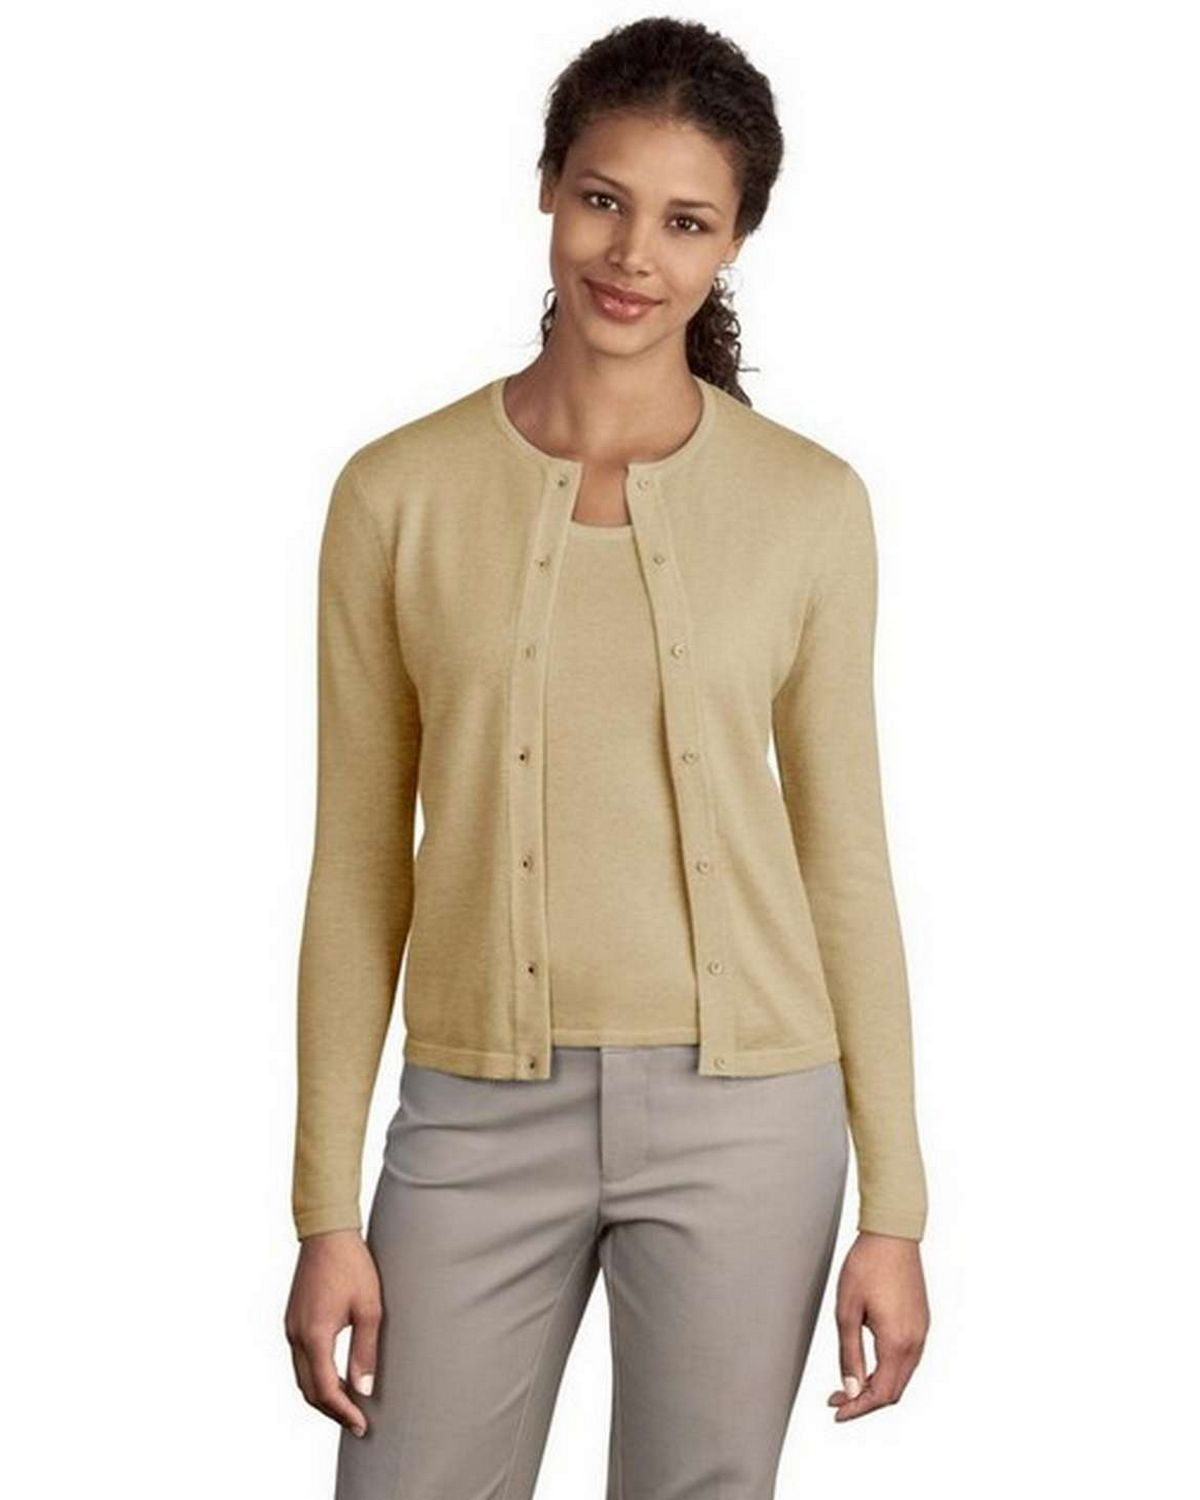 4c36dea326 Port Authority LSW280 Signature Ladies Fine Gauge Crewneck Cardigan Sweater.  Decoration. Model image. May not reflect selected color. No Picture